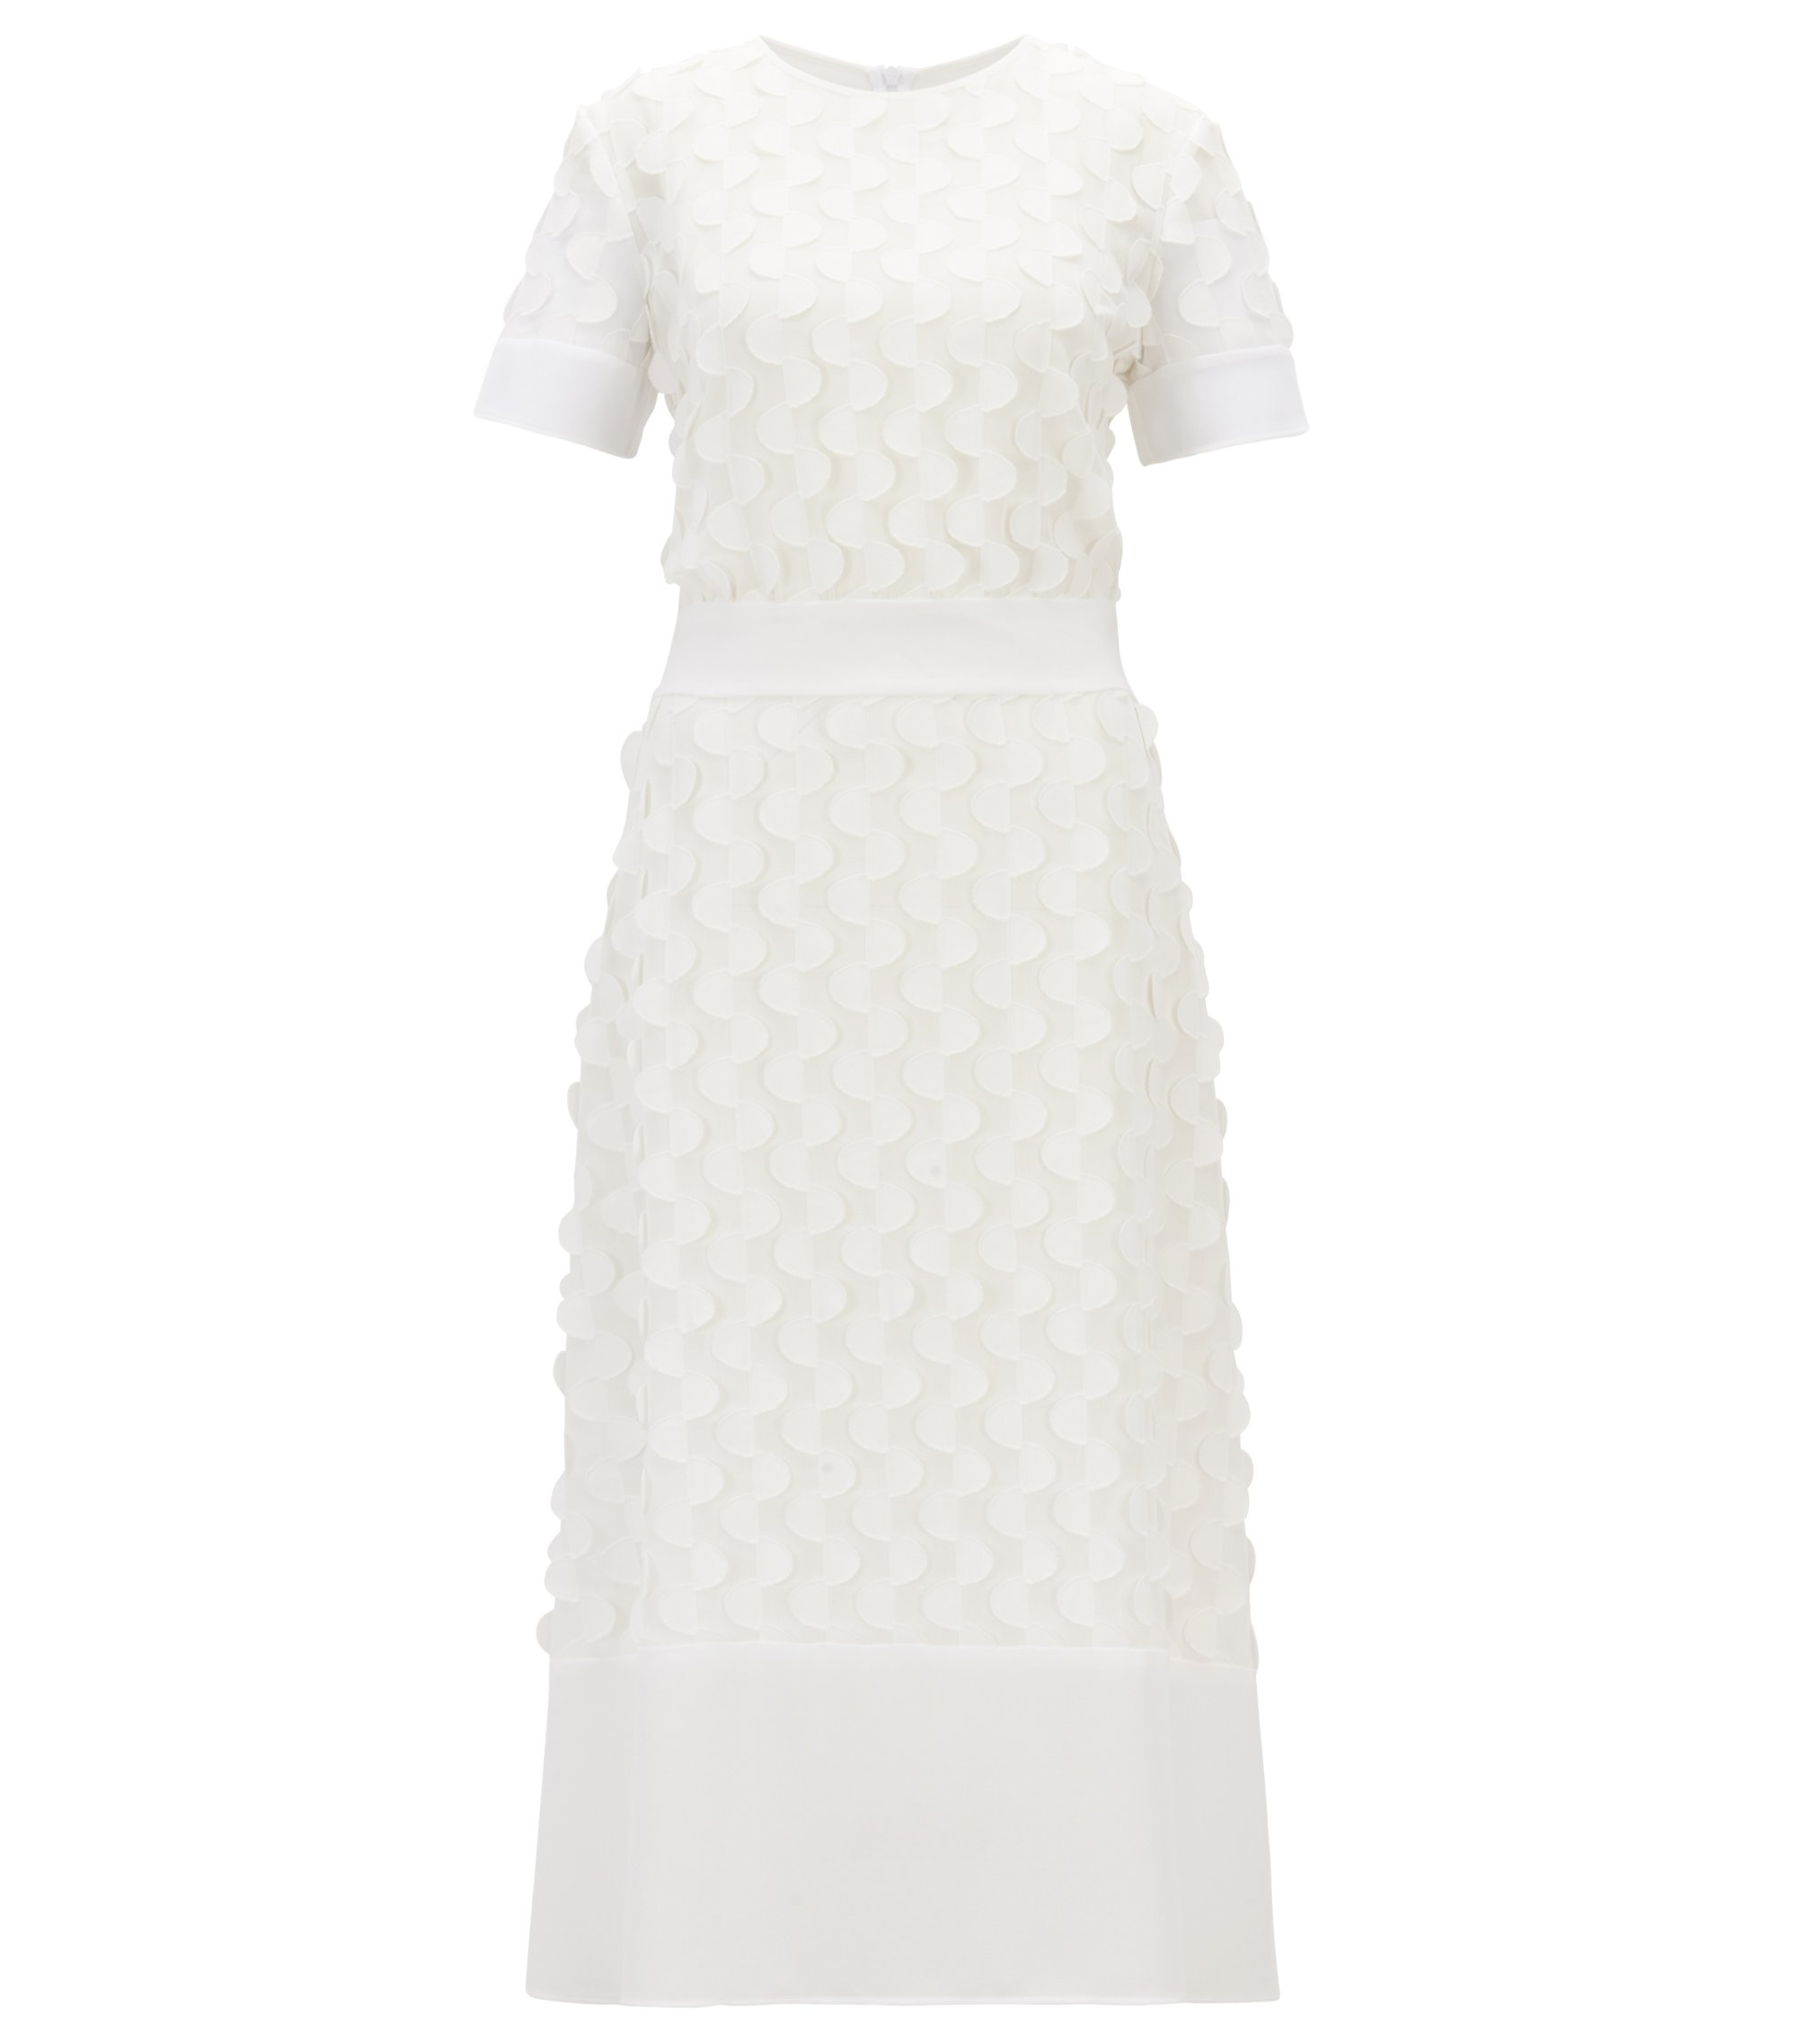 Short-sleeved dress in textured-effect crepe georgette, Natural